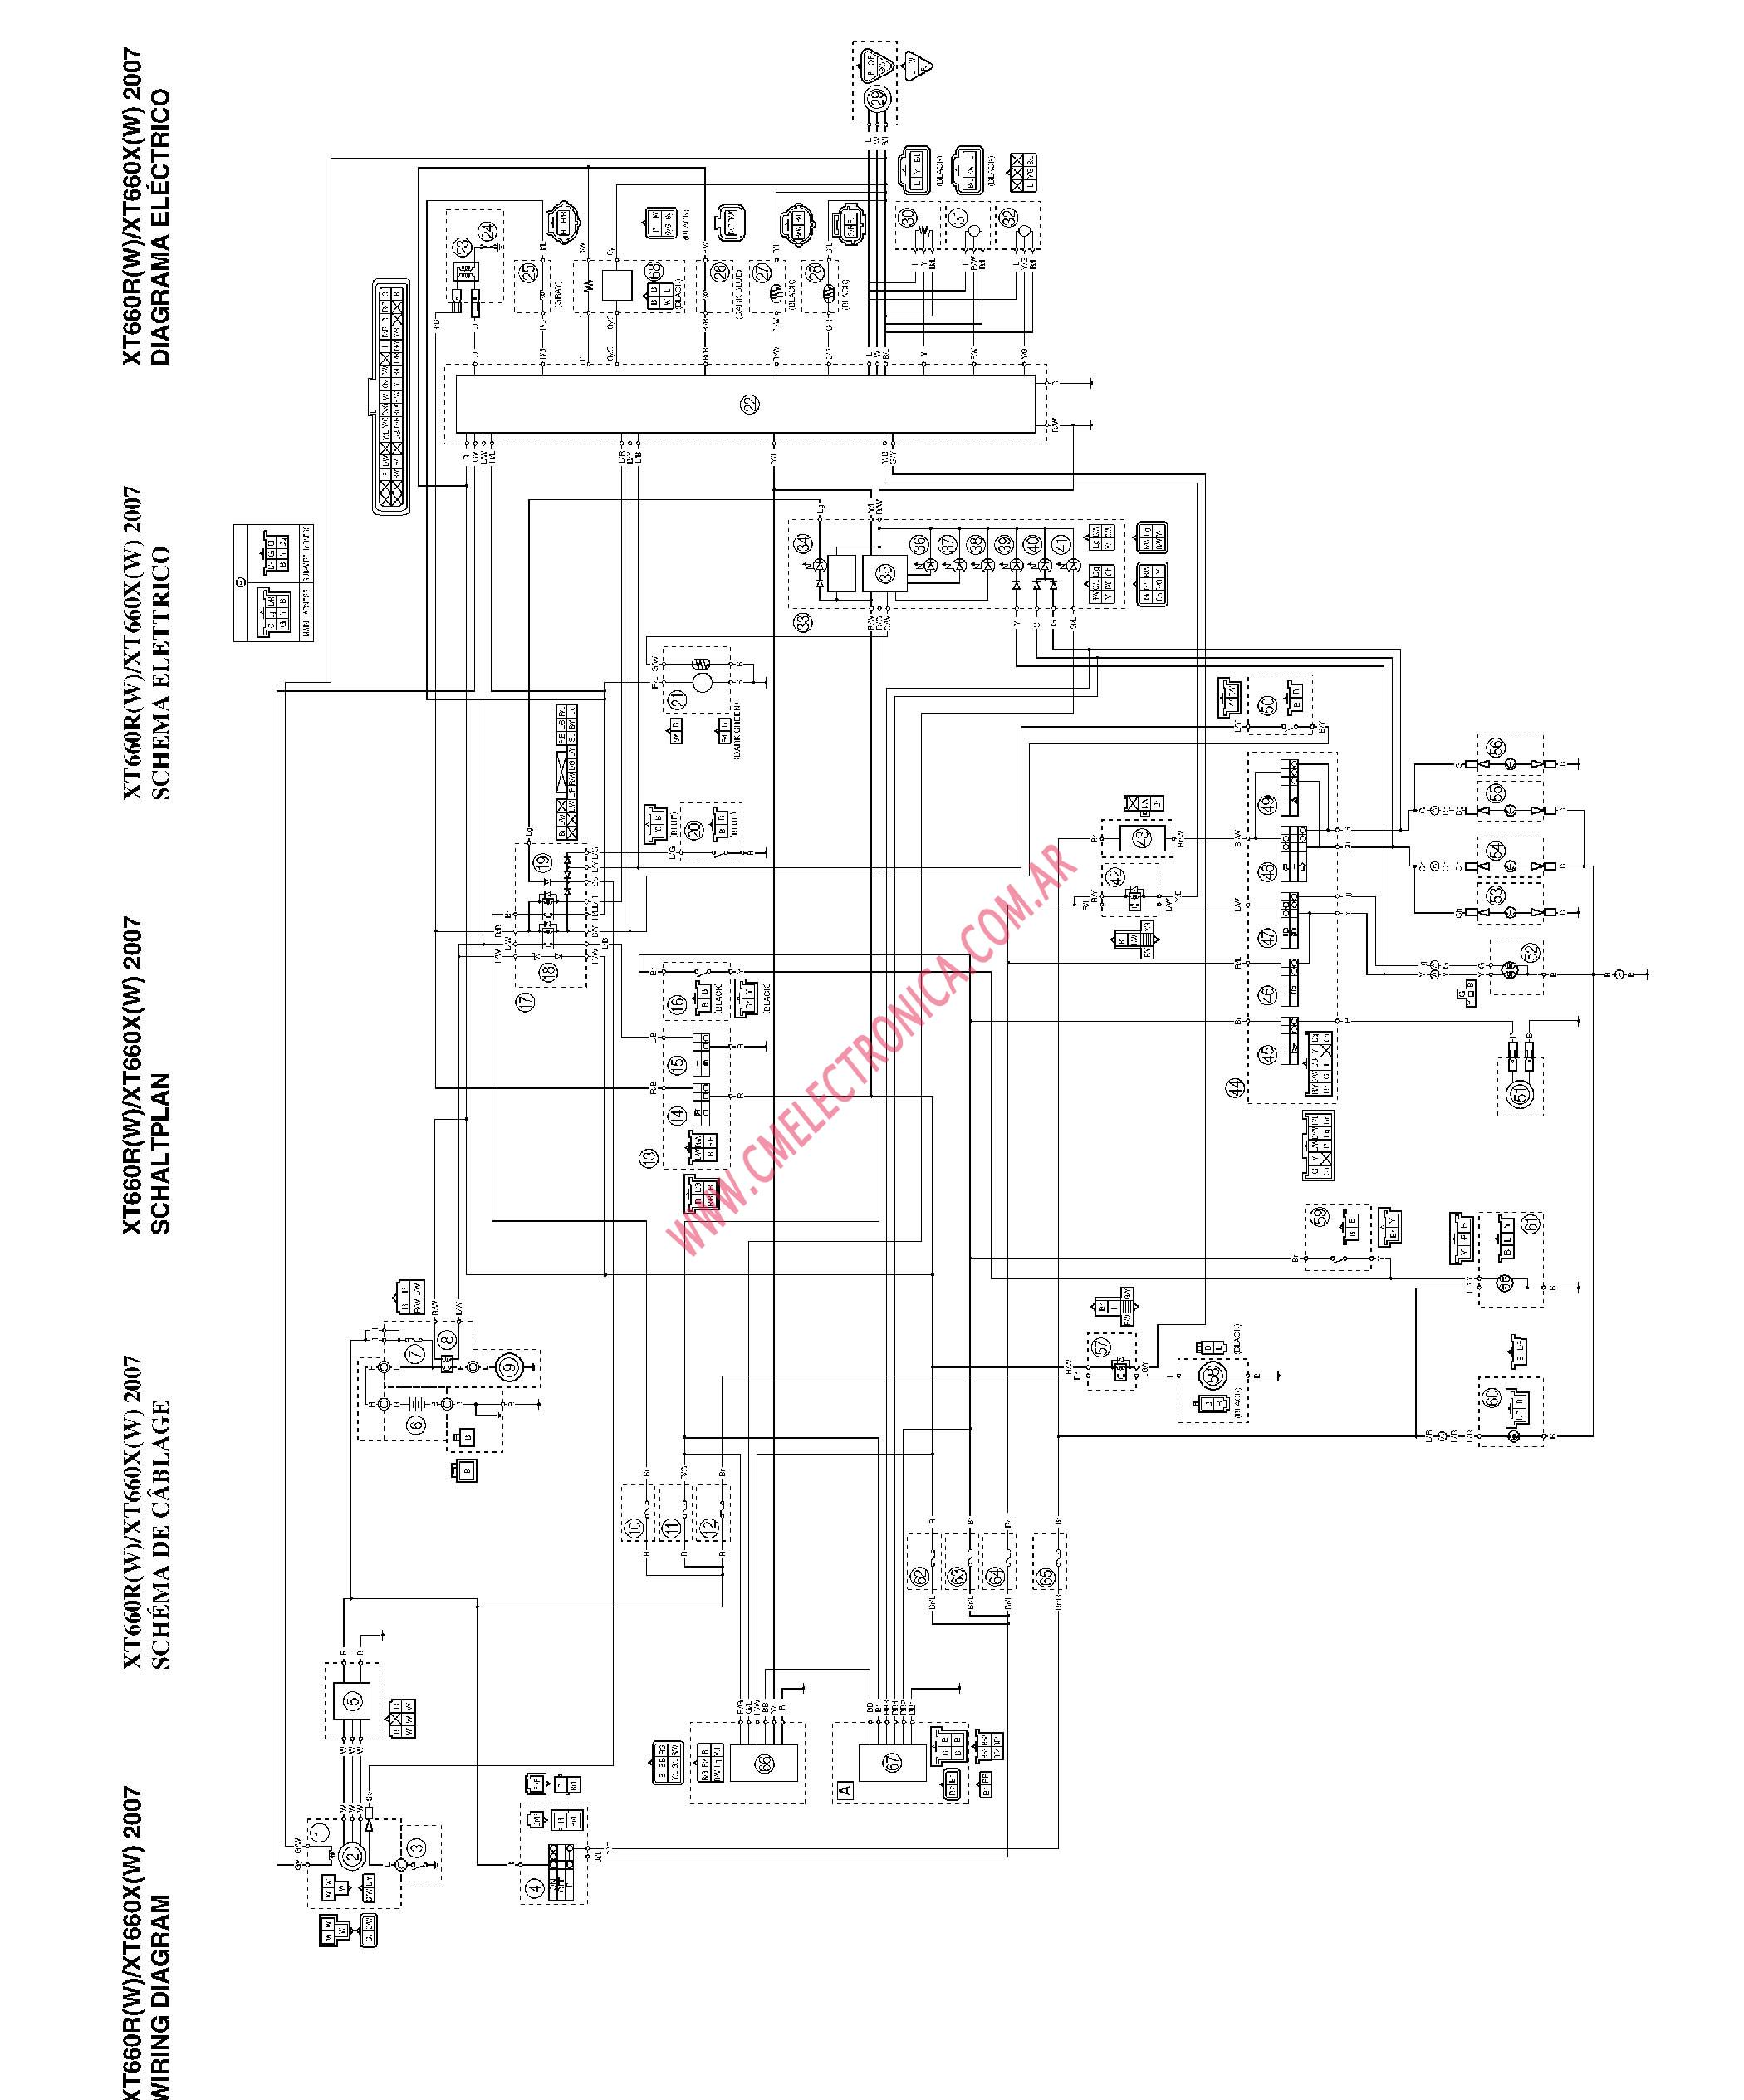 hight resolution of vbb wiring diagram schematic diagrams vespa p125x wiring diagram vespa vbb wiring diagram